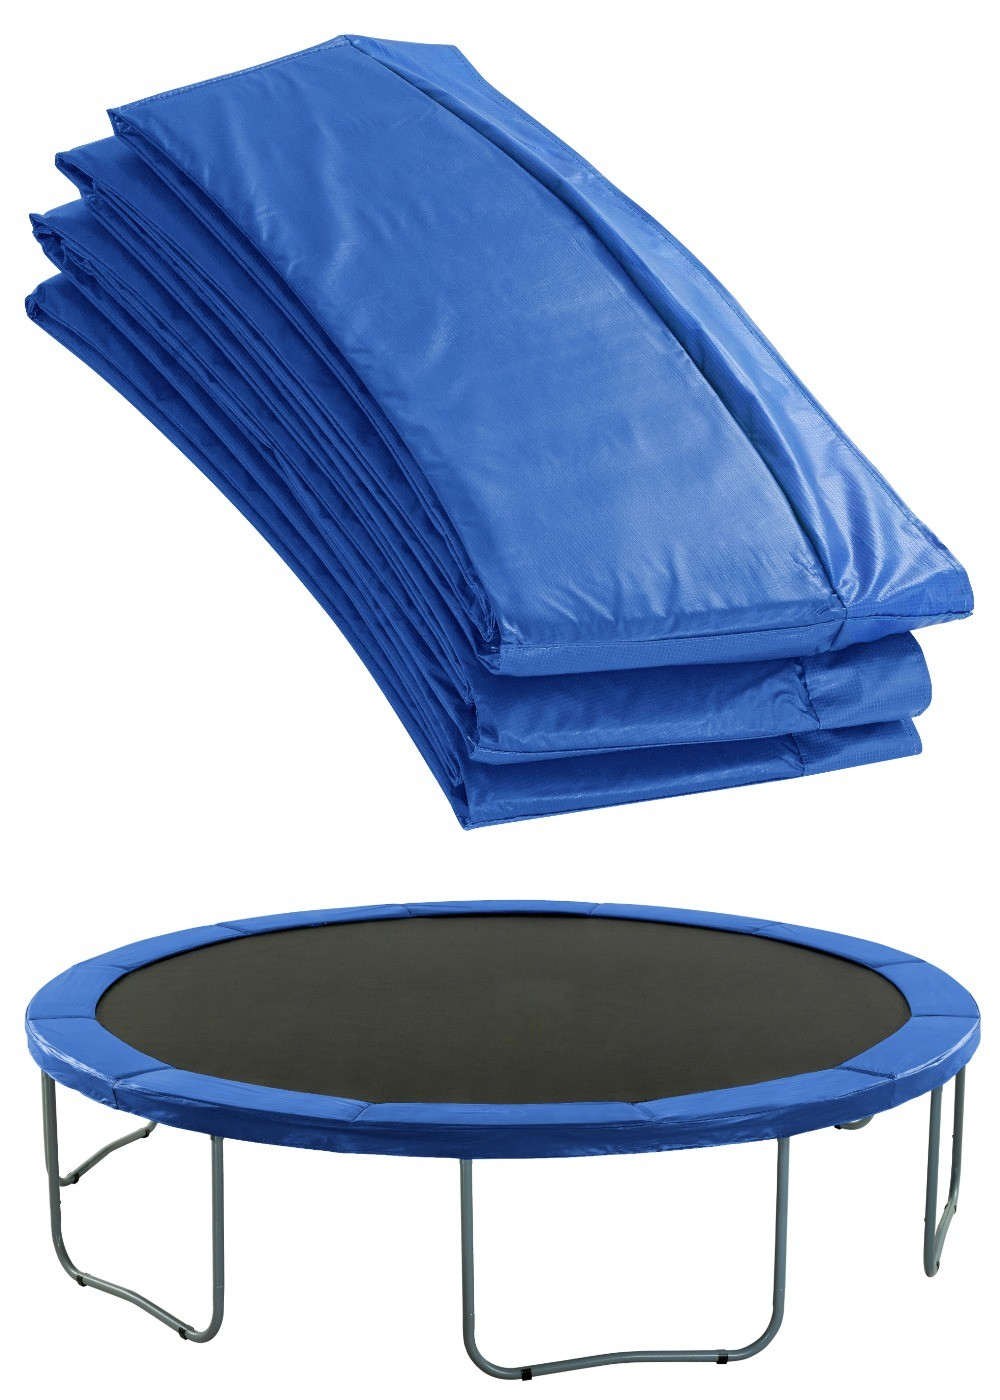 Premium Trampoline Replacement Safety Pad (Spring Cover) | Padding for 488cm 16ft Trampoline | Blue